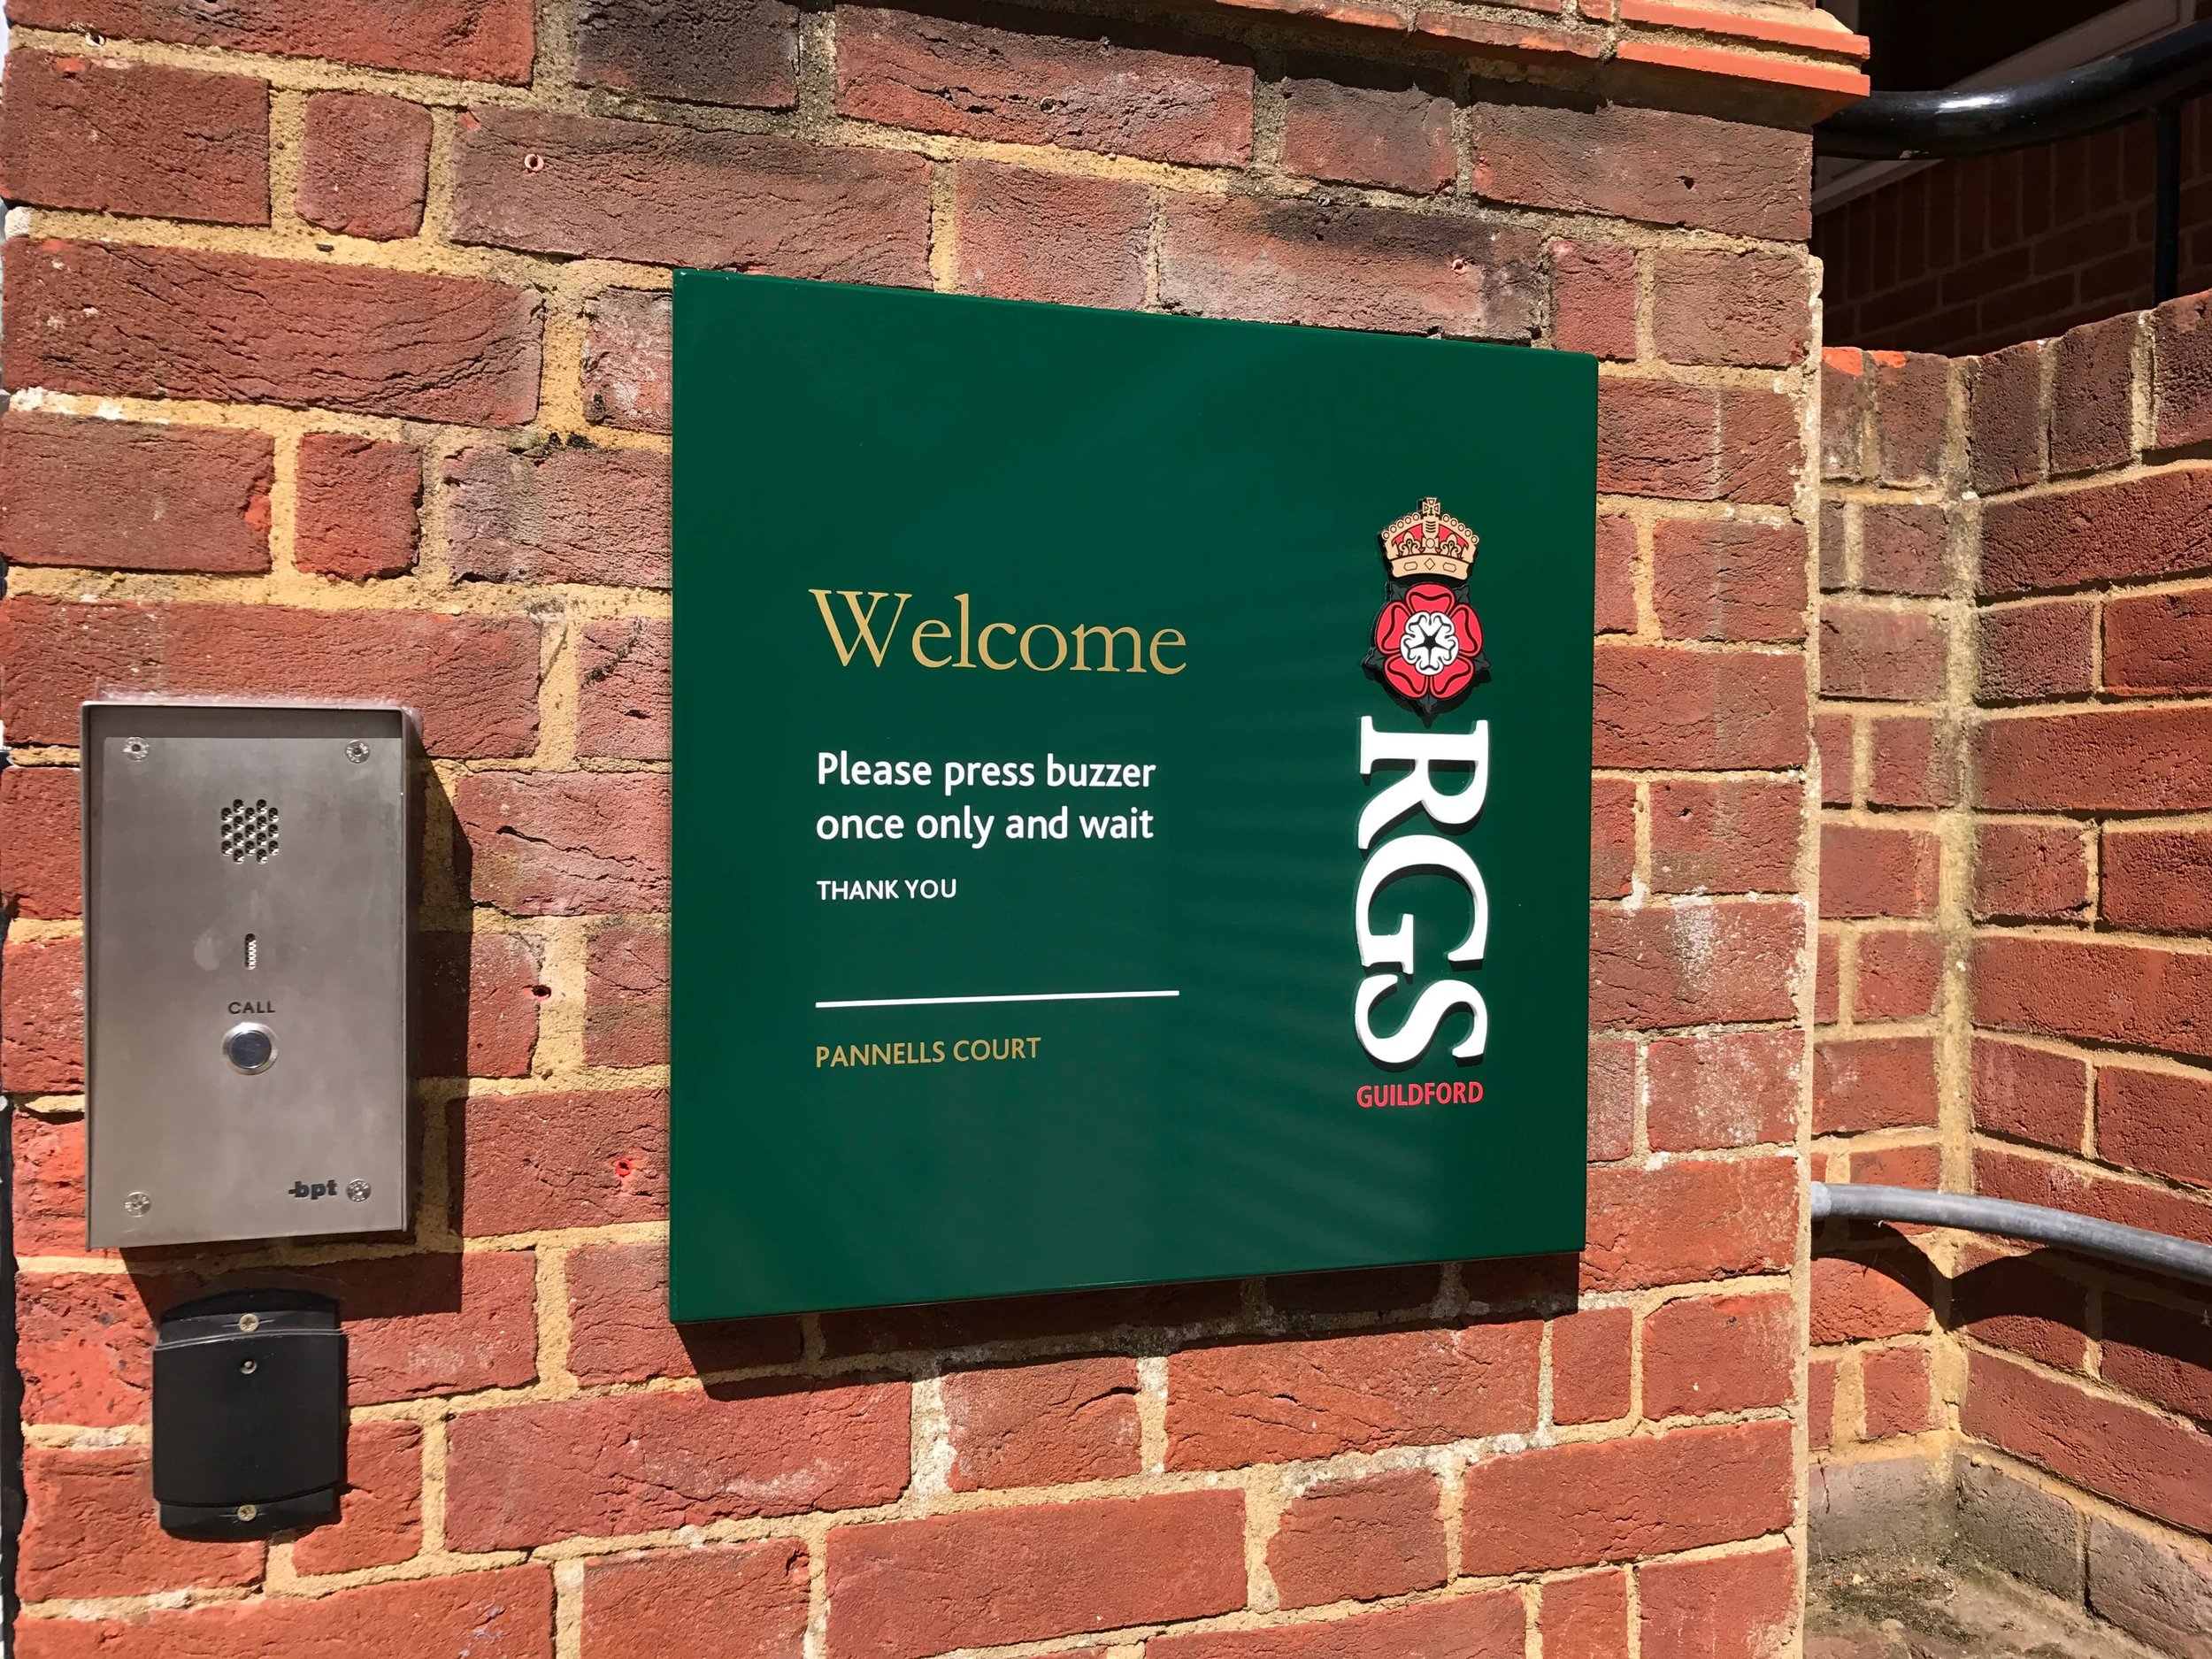 royal_grammar_school_welcome_sign_01.JPG